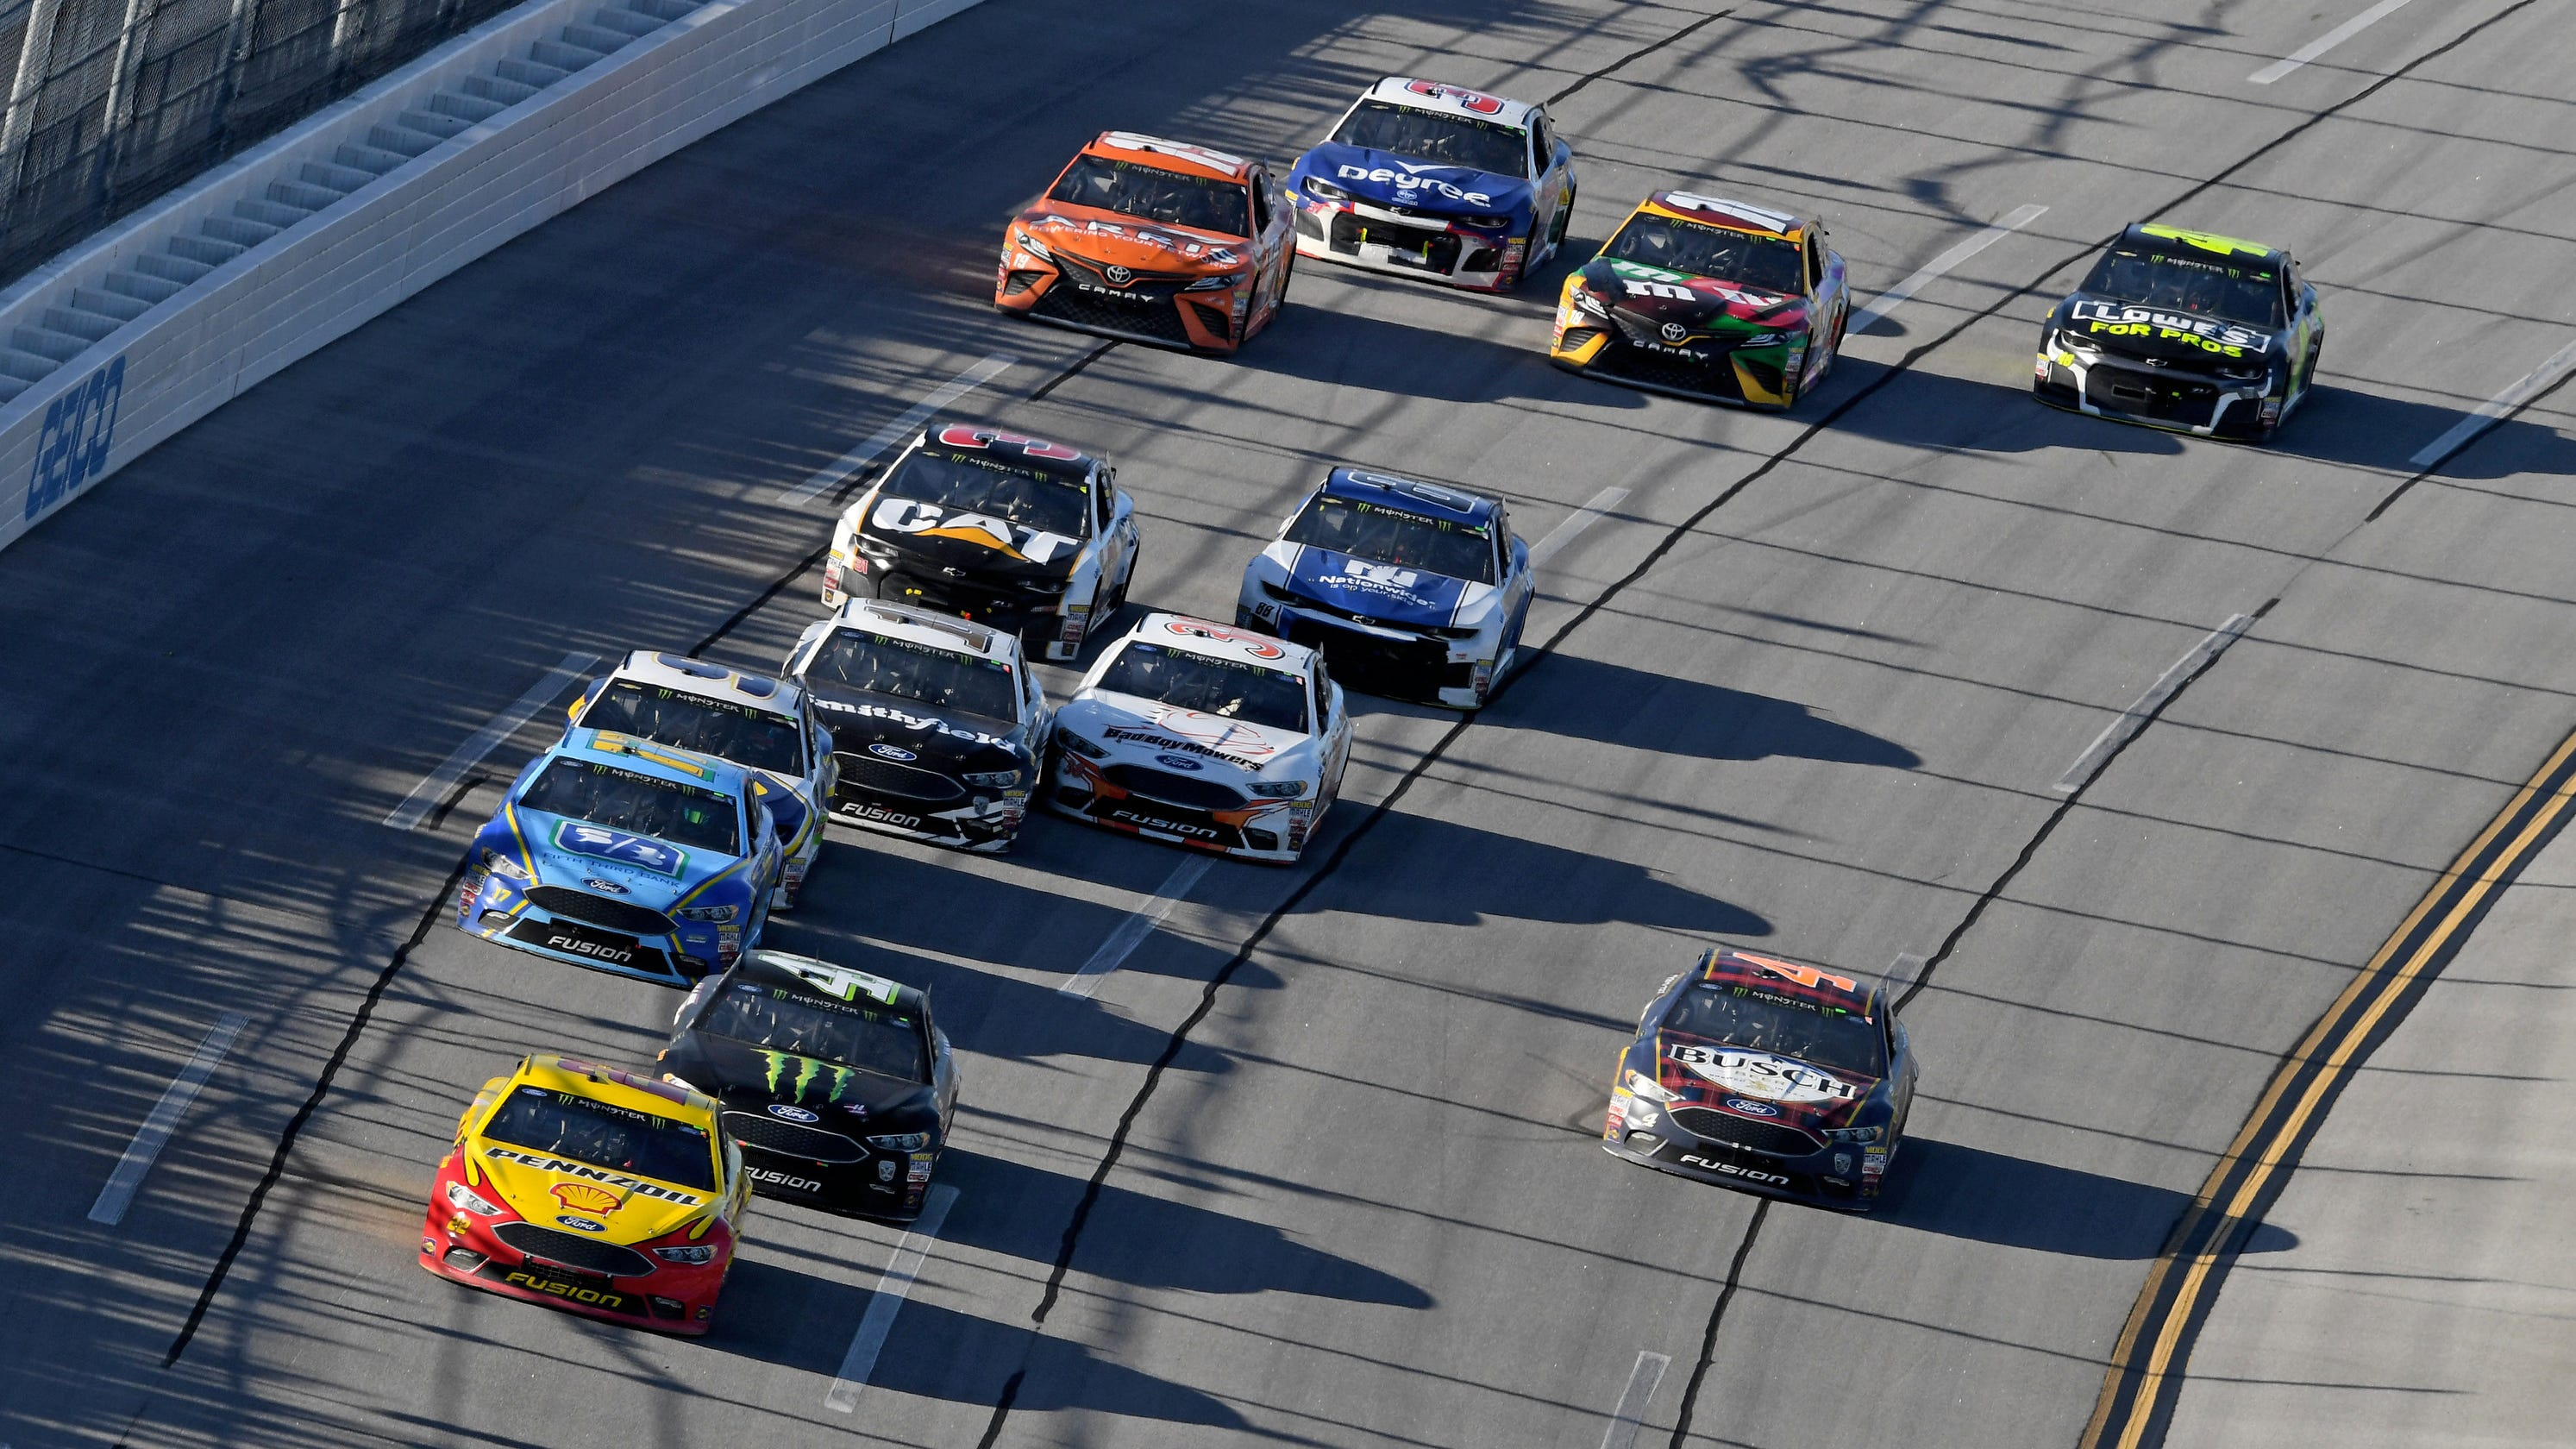 NASCAR Cup playoff race at Talladega 2018: Start time, lineup, TV schedule, more